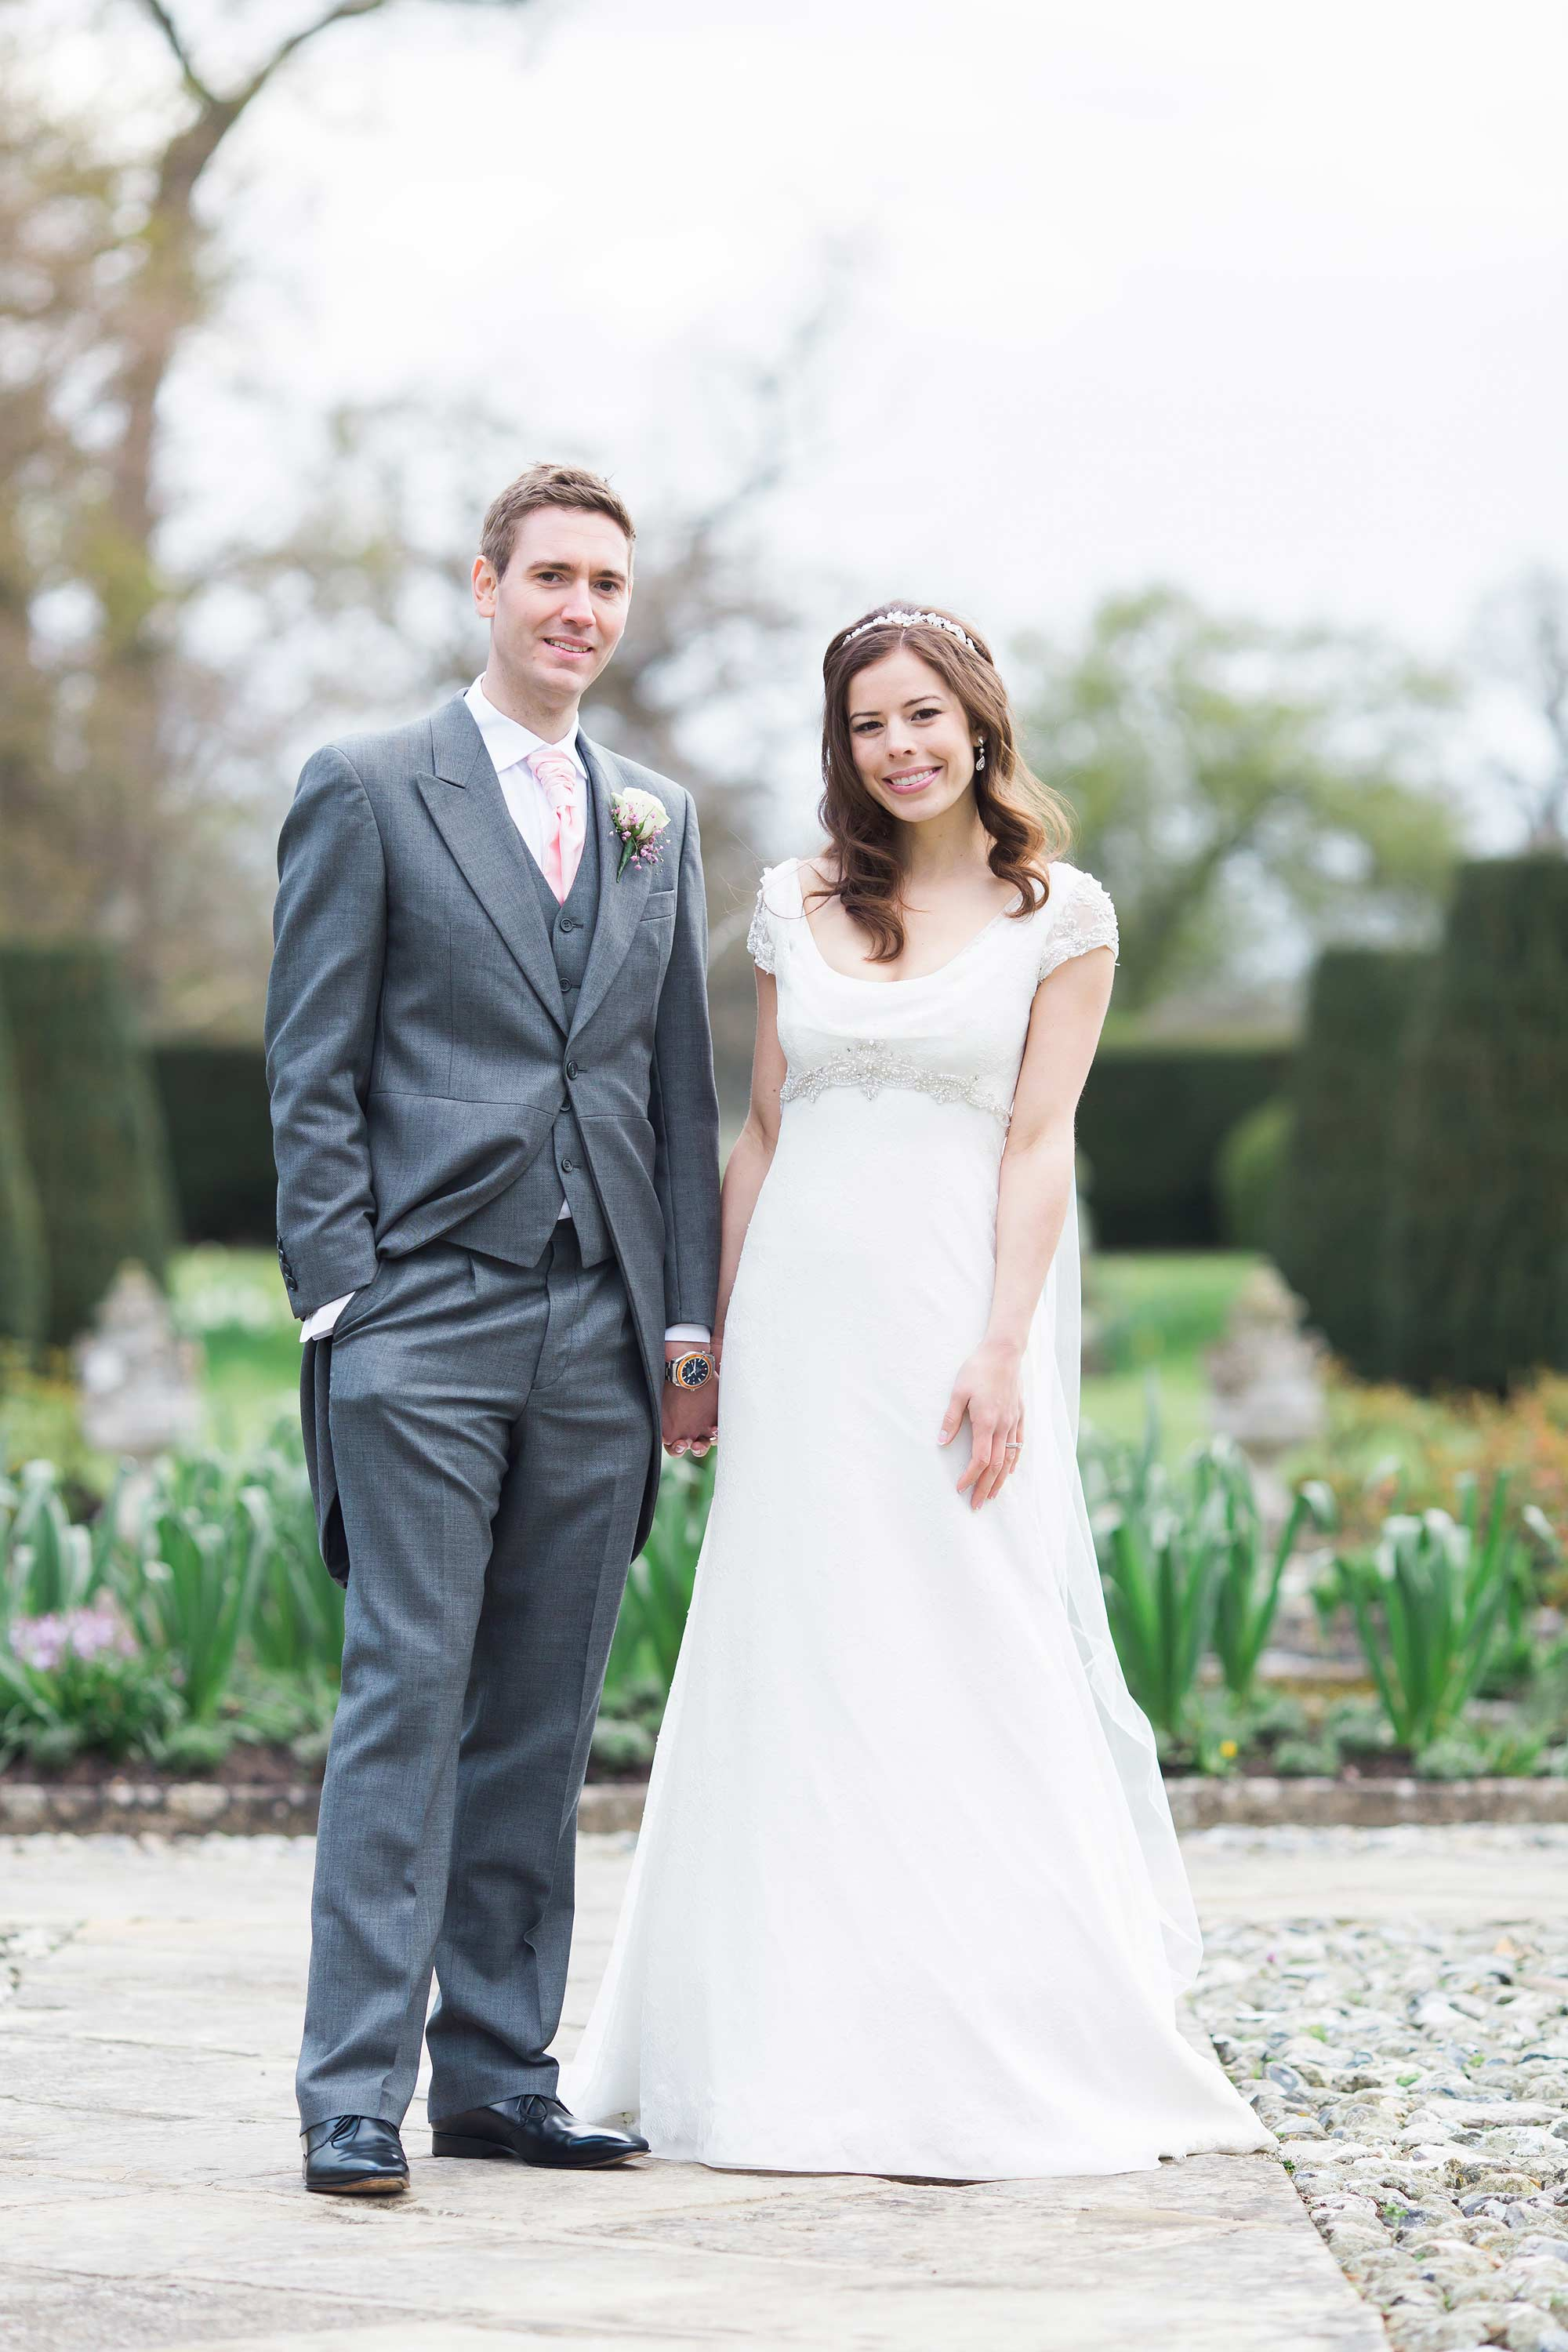 Amy and Jack a full length wedding photo taken at Hengrave Hall